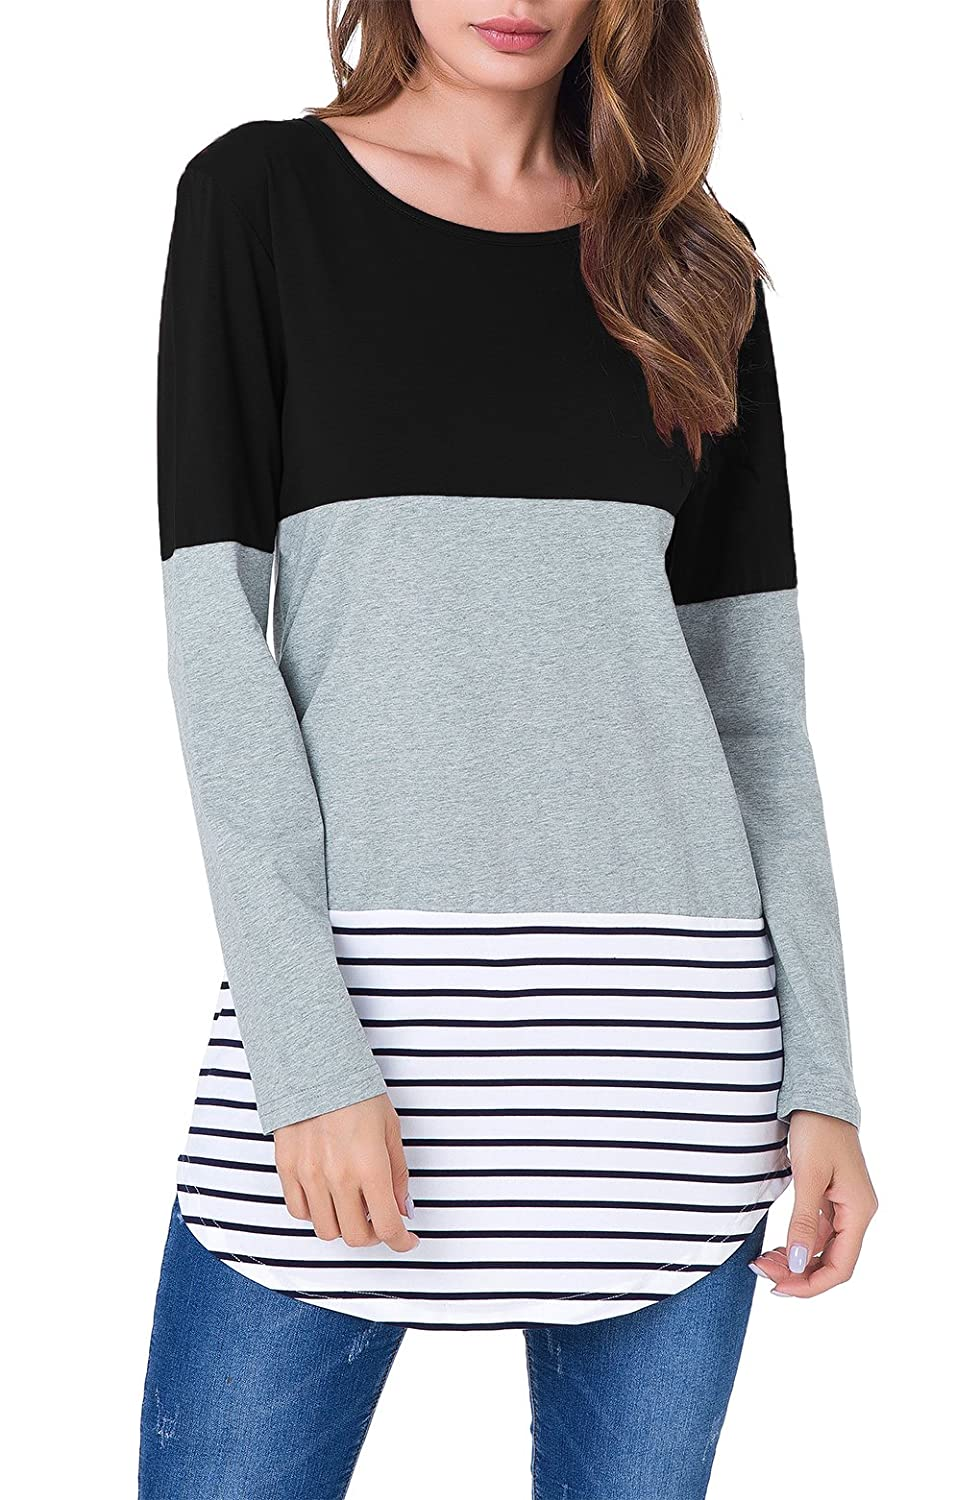 129744d5cca 100% Brand New,High quality,the material is lightweight and soft,stretch  fabric,breathable,comfort touched. Tunic tops;Casual O-Neck Long Sleeve ...